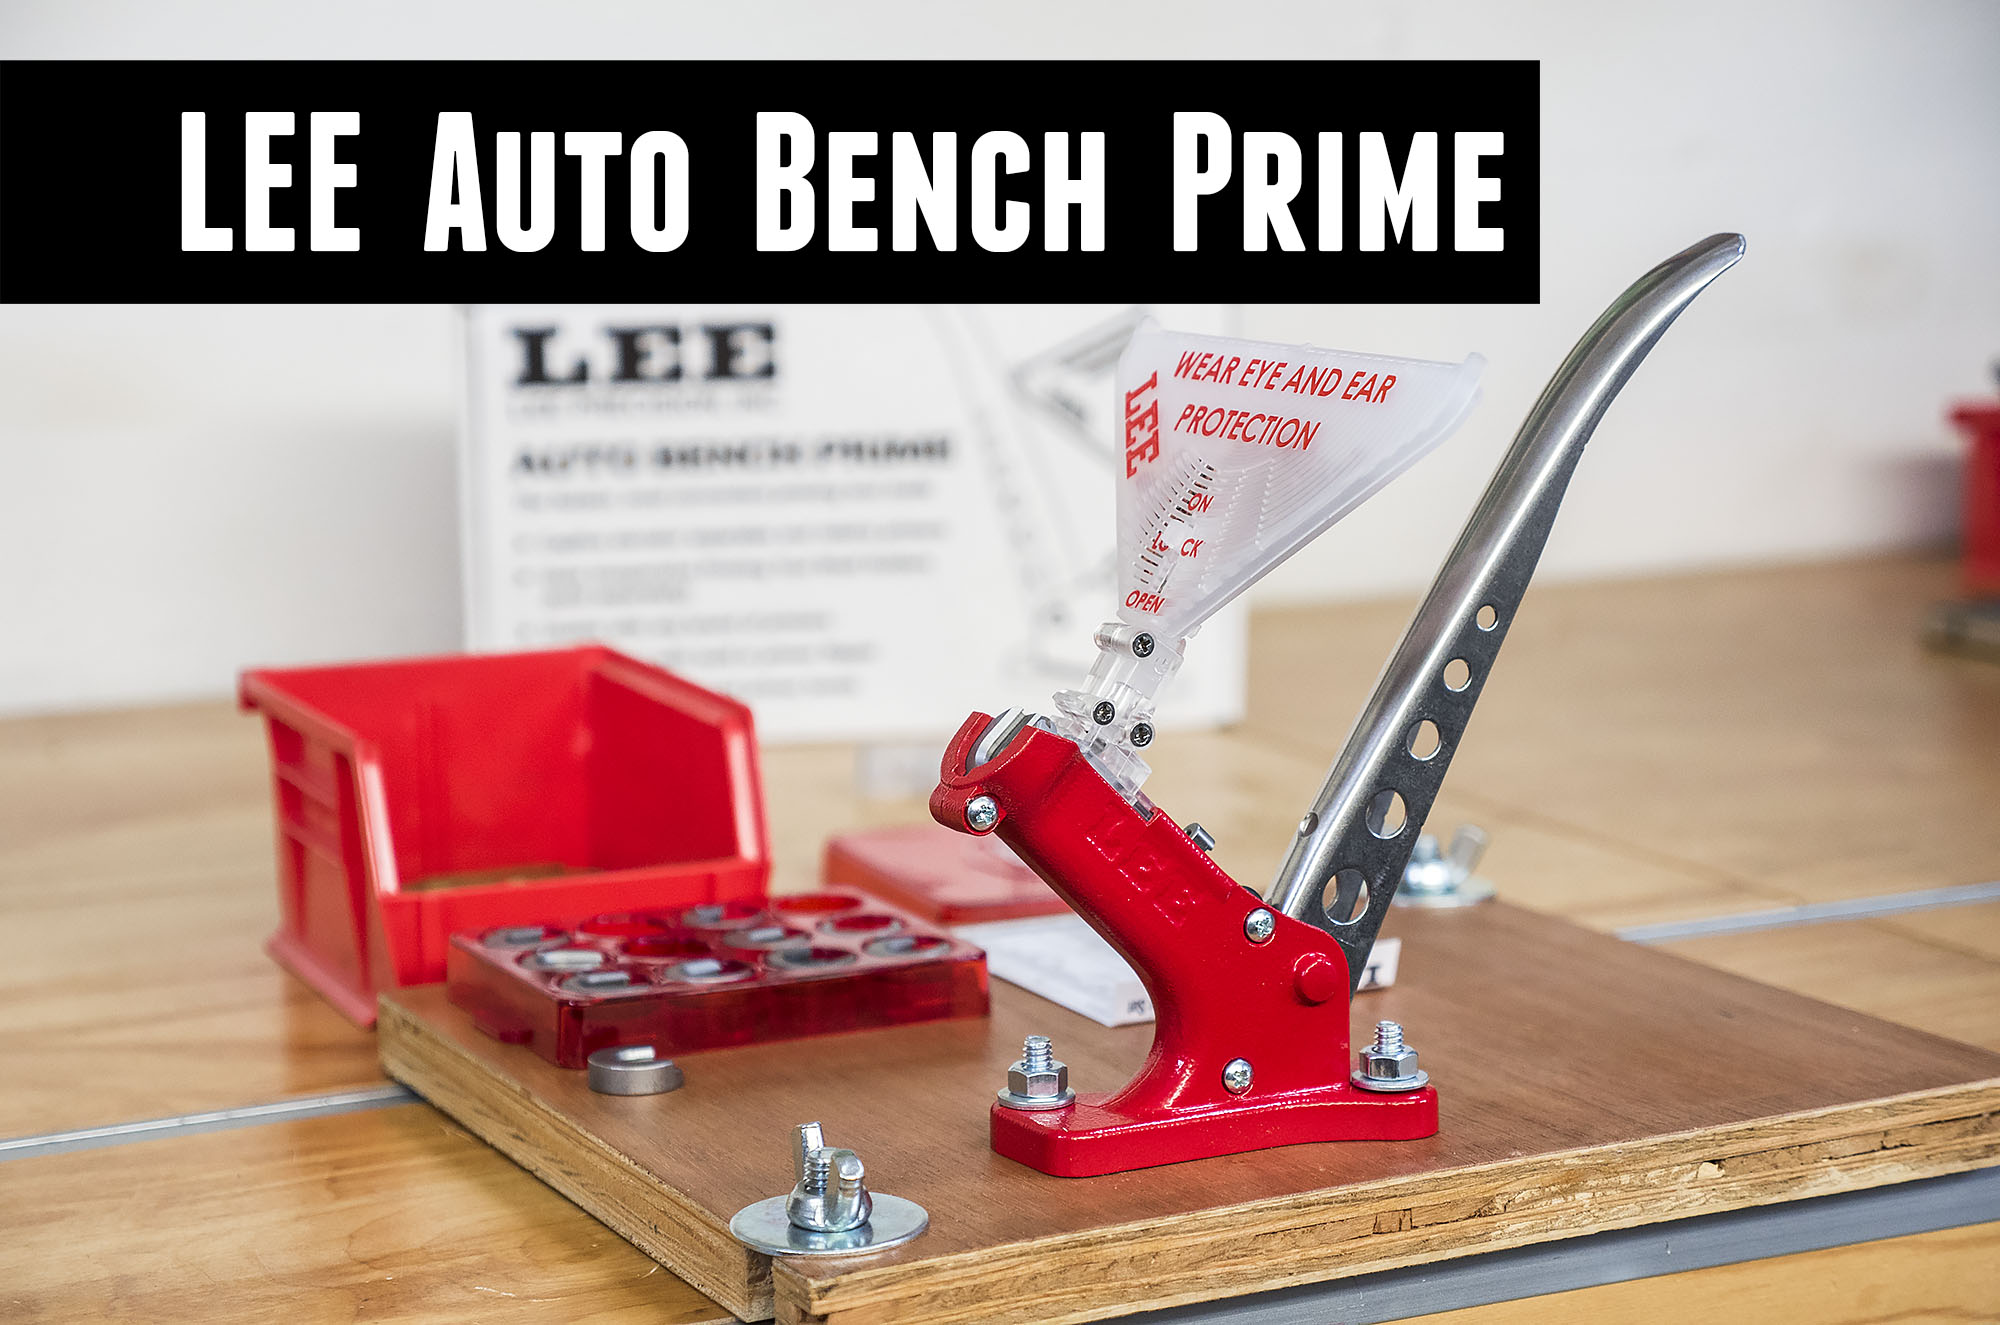 LEE Auto Bench Priming Tool: Overview, Setup, Priming .223 and .308 Cases